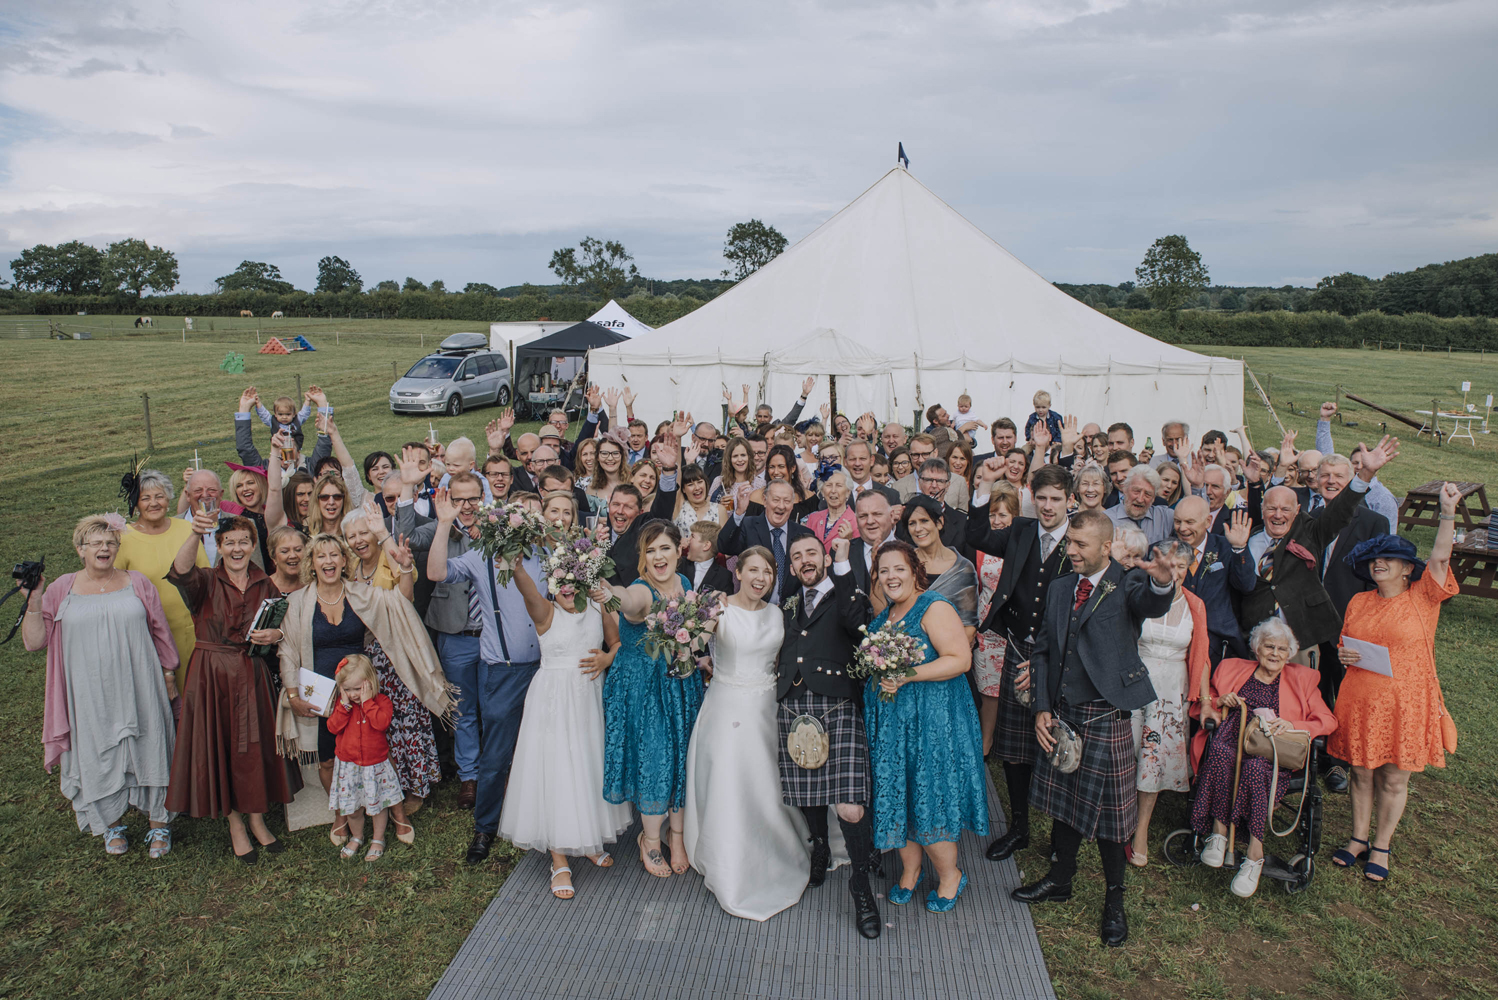 BEST_OF_2017_NORFOLK_WEDDING_PHOTOGRAPHER_138